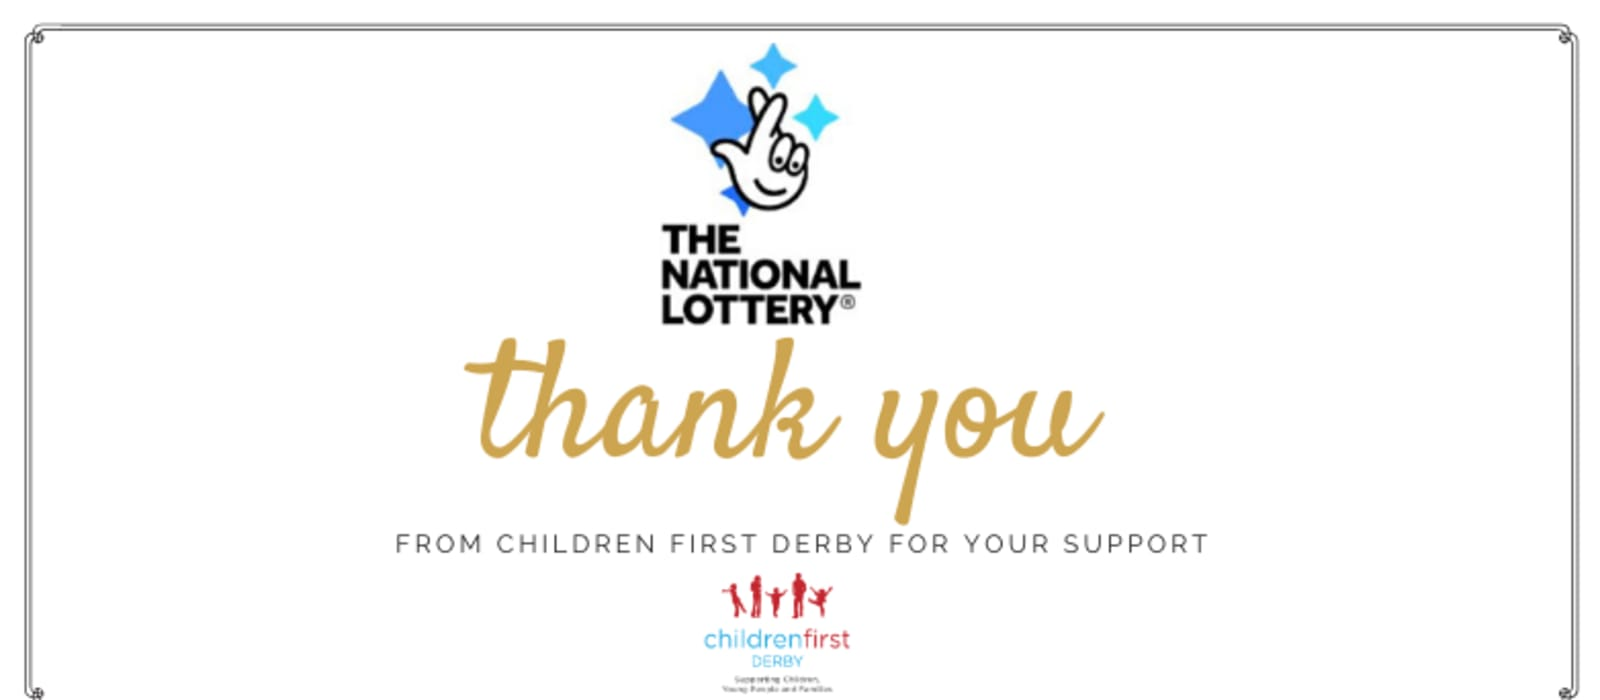 Children First Derby receives £129,000 from the National Lottery to fund their Family Support Service